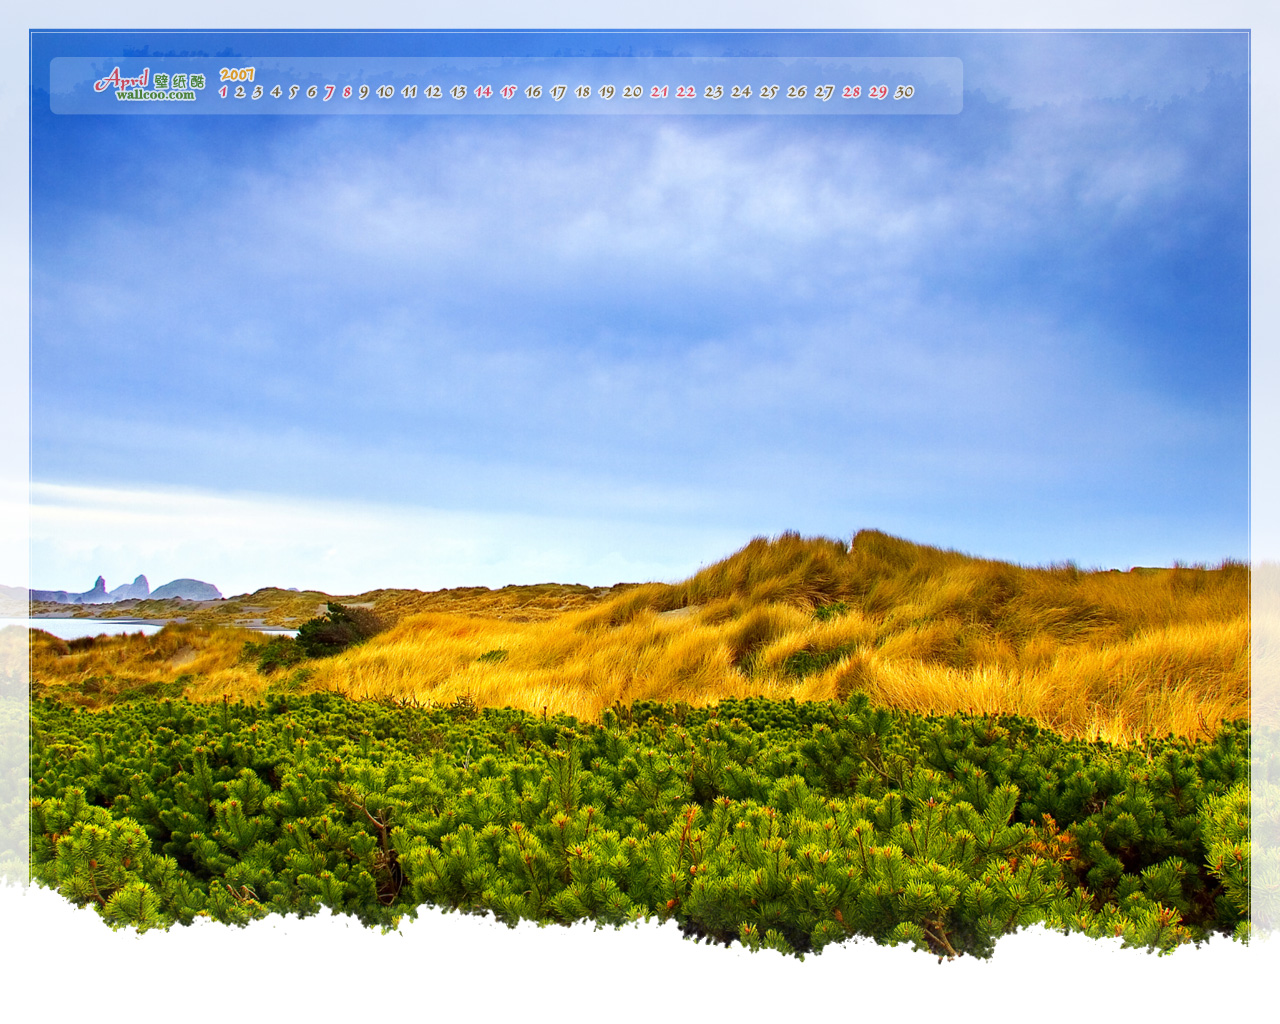 wwwwallpapers in hdcomphotocalendar wallpaper originals26html 1280x1024